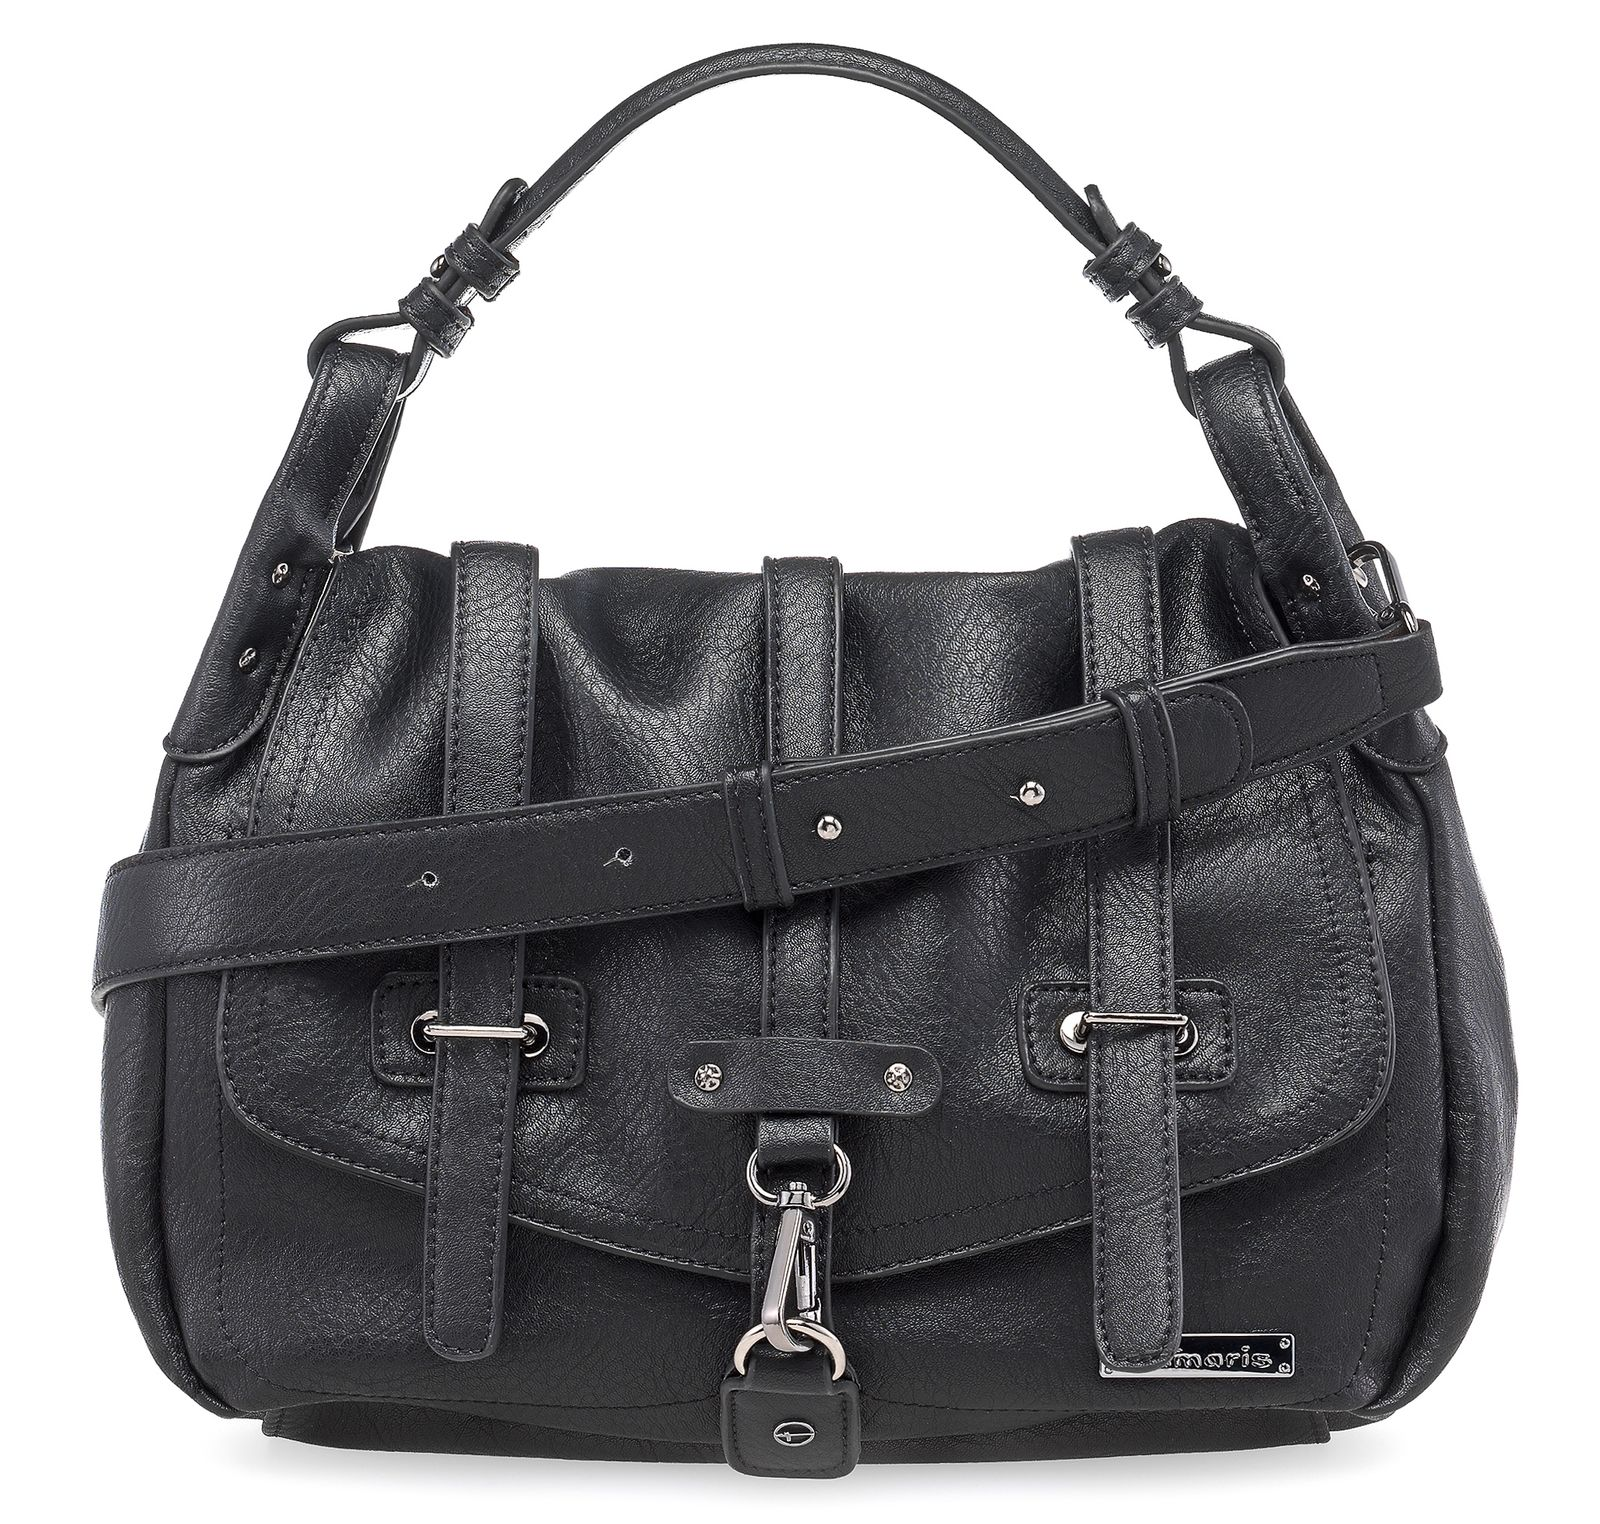 Tamaris Bernadette Satchel Bag Black